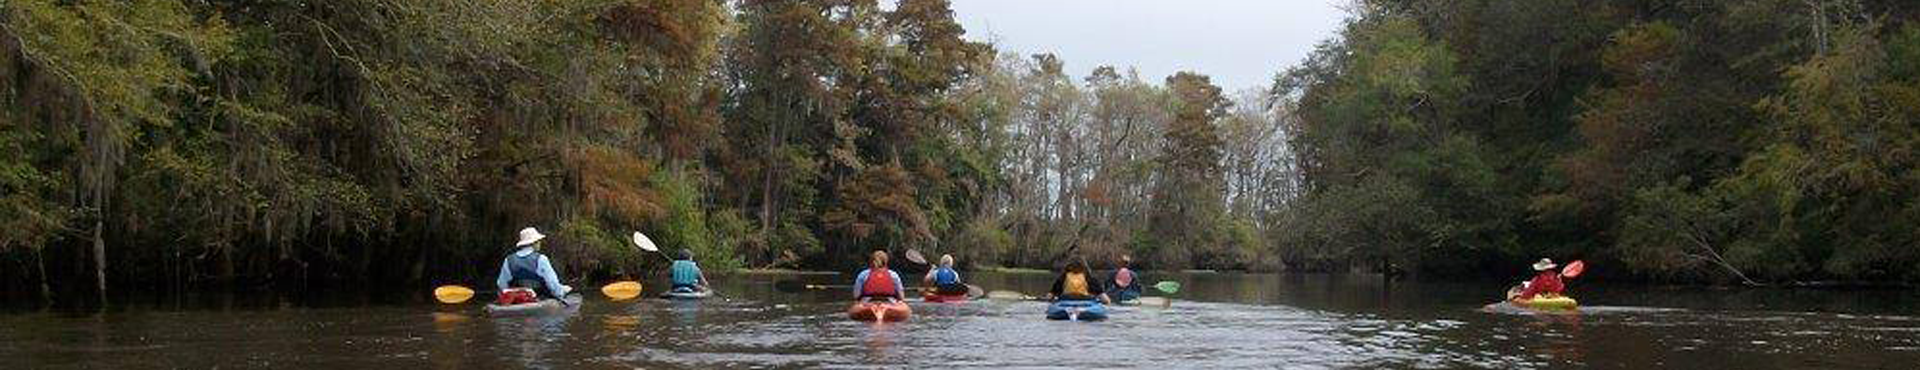 Things to do in the Pee Dee